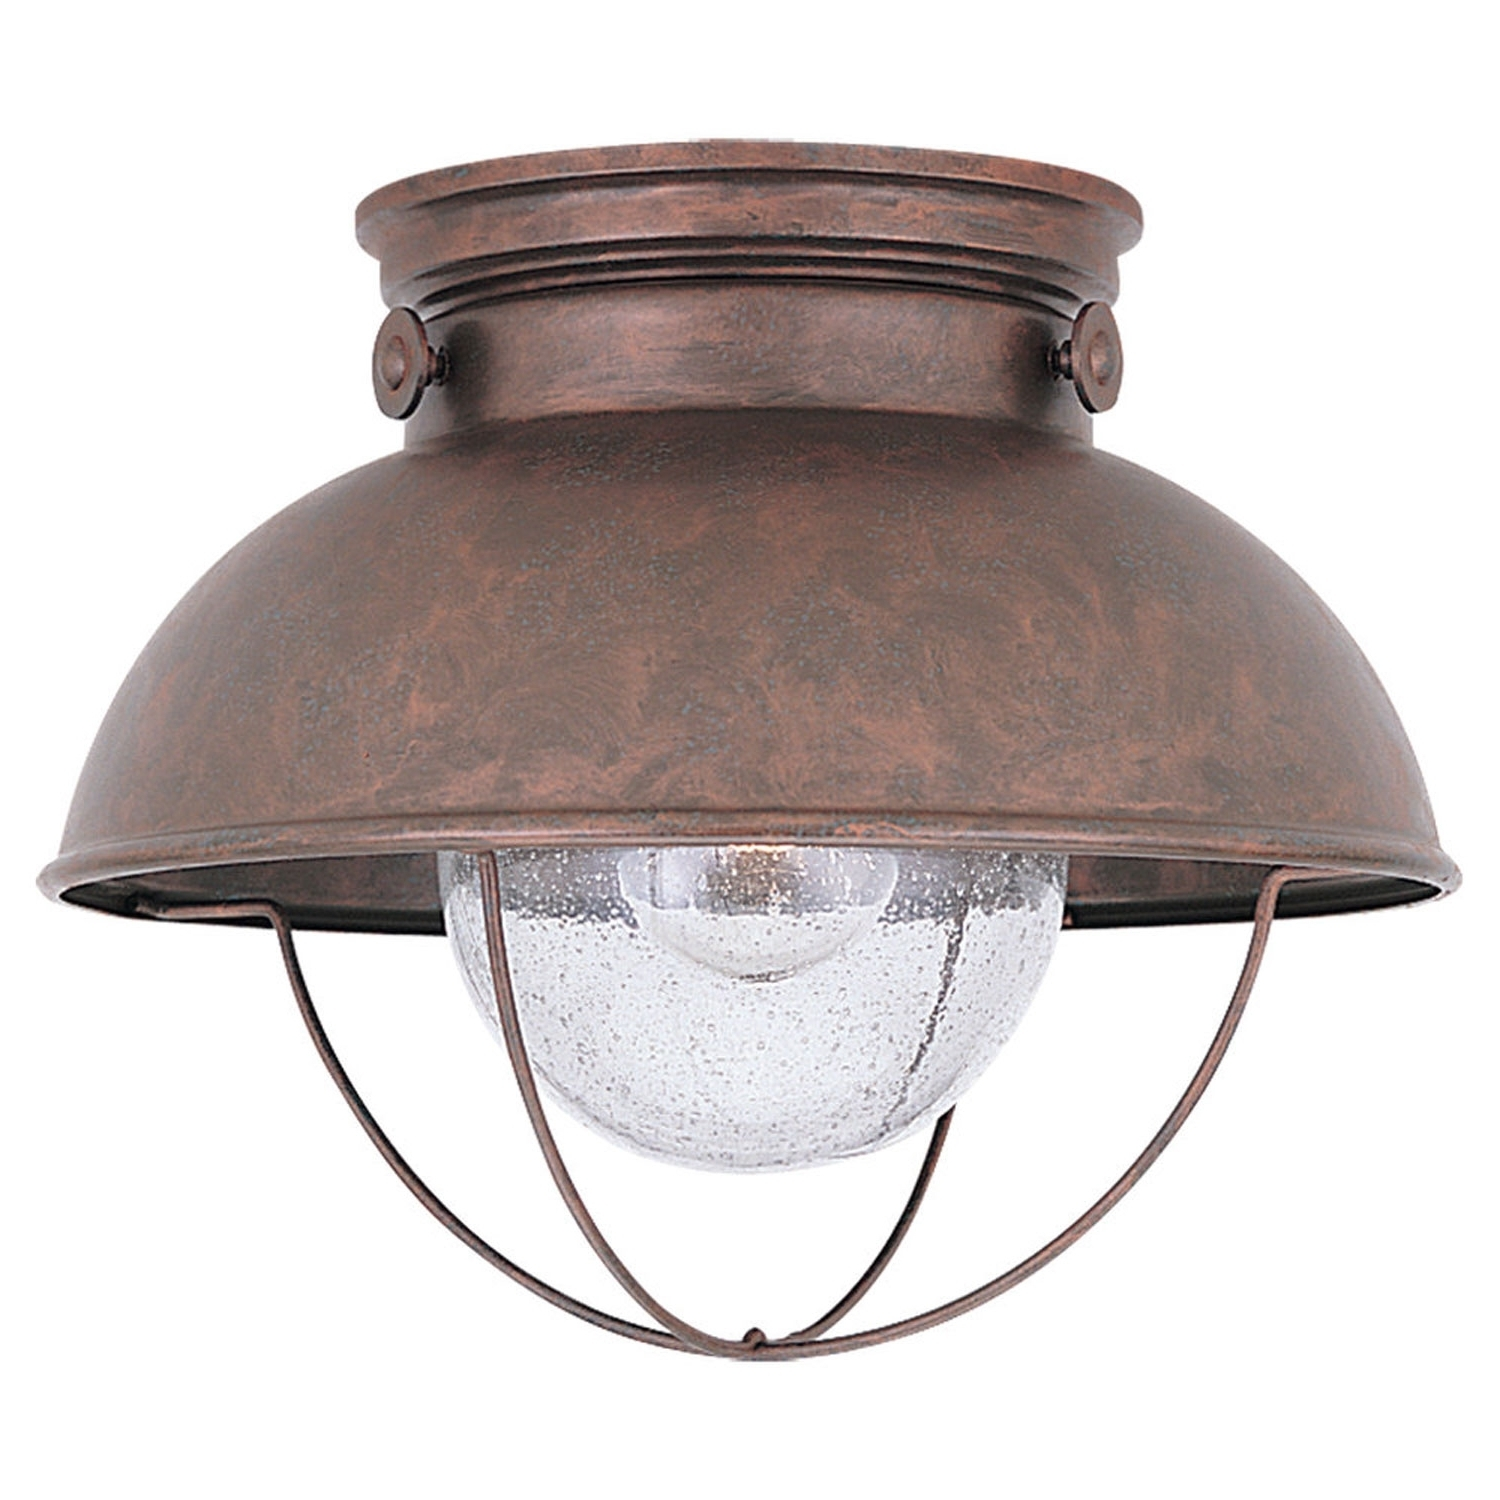 Round Black Finish Motion Sensor Outdoor Ceiling Light • Outdoor Pertaining To Famous Outdoor Ceiling Sensor Lights (View 18 of 20)